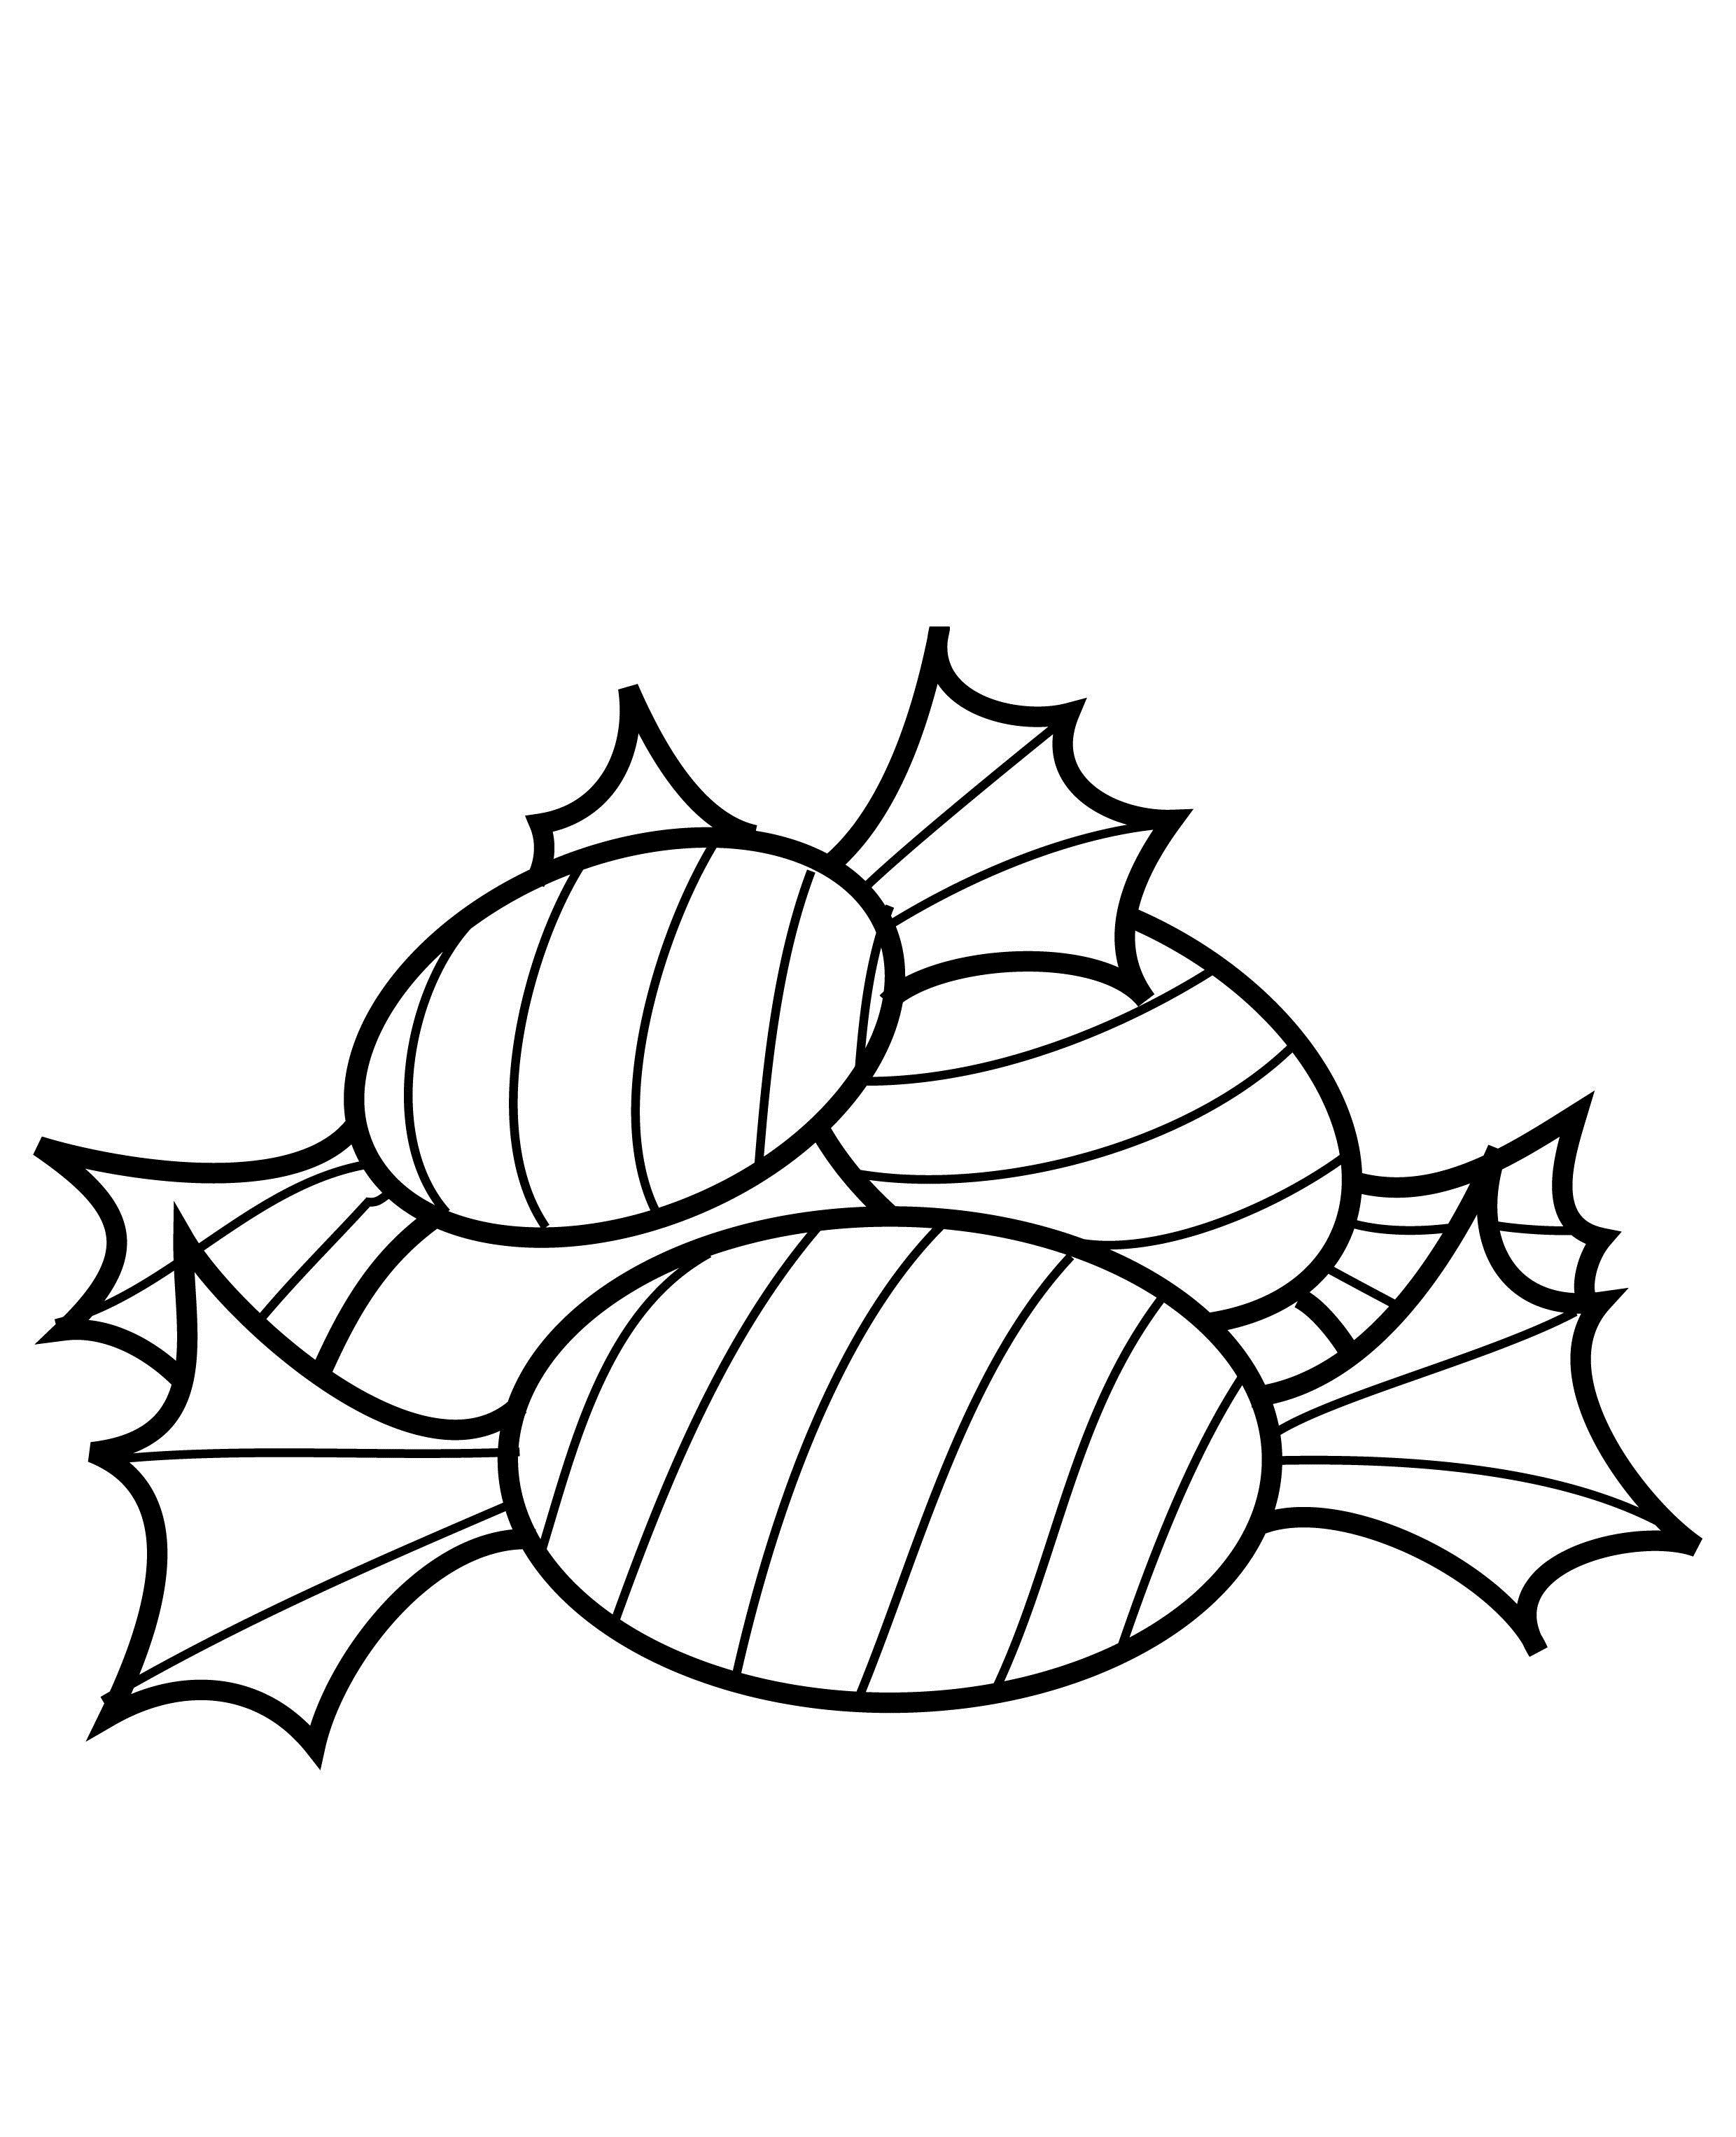 a lot of candy coloring pages   Candy Drawing at GetDrawings.com   Free for personal use ...